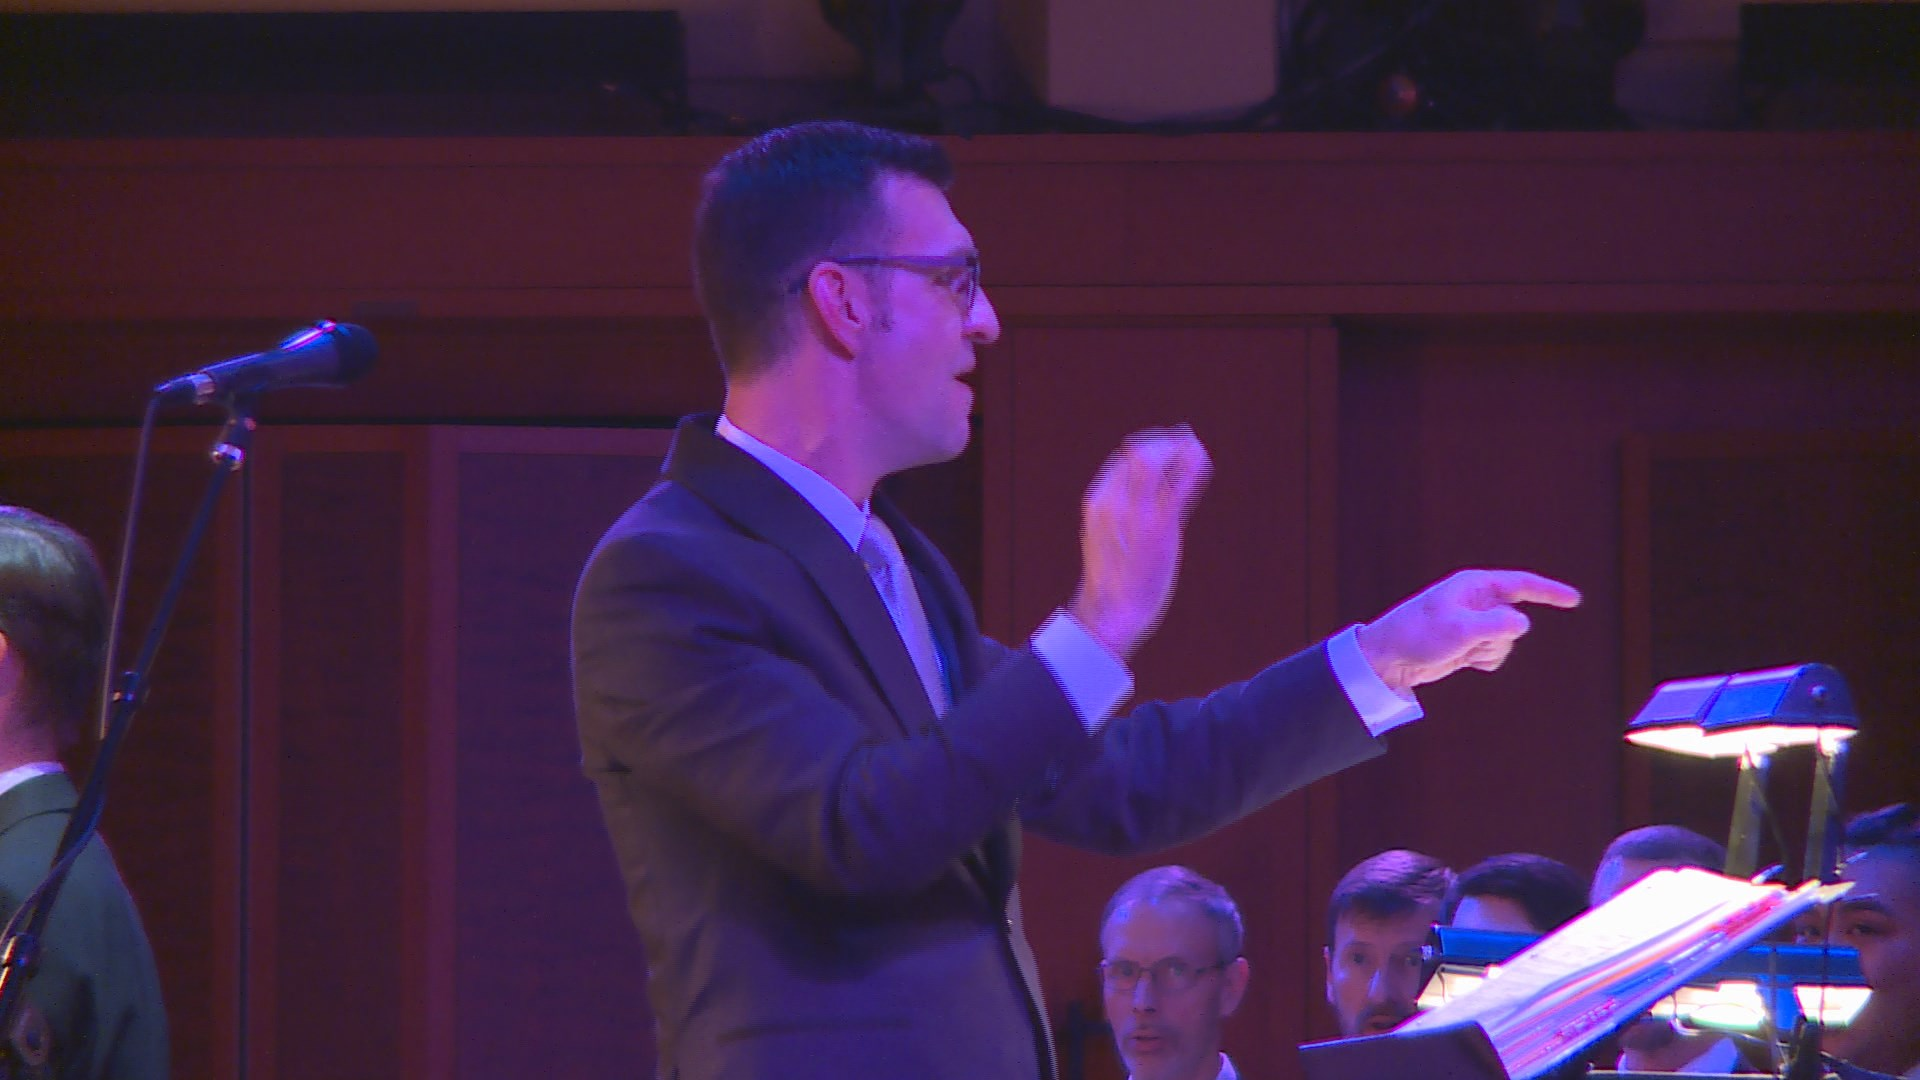 Music saves Seattle choir director in hit-and-run | KING5.com